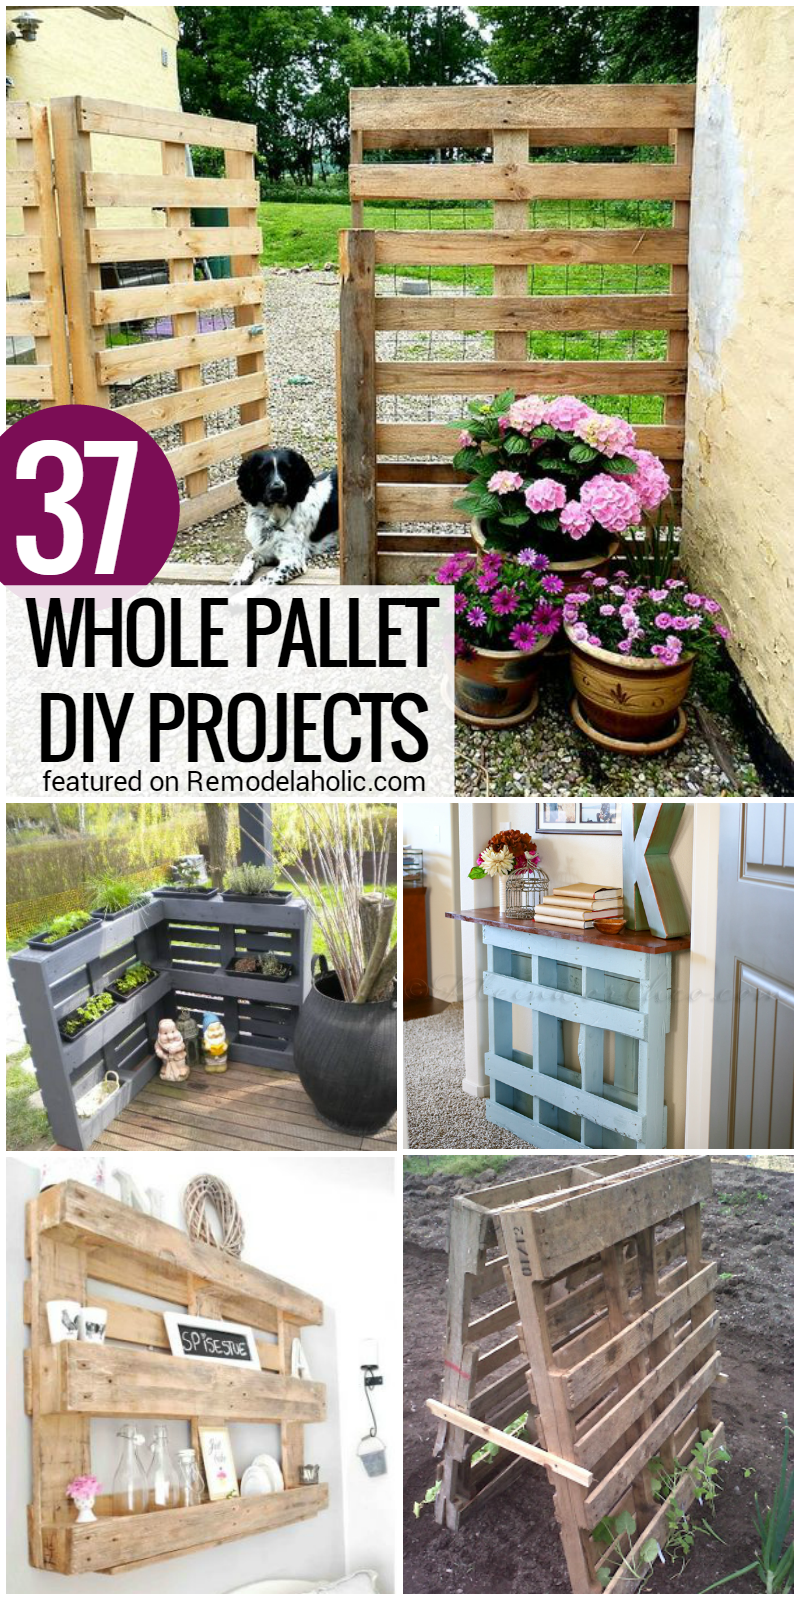 37-whole-pallet-projects-no-disembly-required-@Remodelaholic Pallet Playhouse Plans To Build on pallet shelter plans, pallet bench plans, pallet swings plans, pallet furniture ideas, pallet kitchen plans, shed plans, indoor loft plans, pallet gazebo plans, pallet house, pallet pool plans, pallet storage plans, pallet boat plans, pallet shed, pallet wine rack ideas, pallet workshop plans, pallet sandbox plans, pallet projects, pallet lamp plans, pallet wood, pallet building plans,